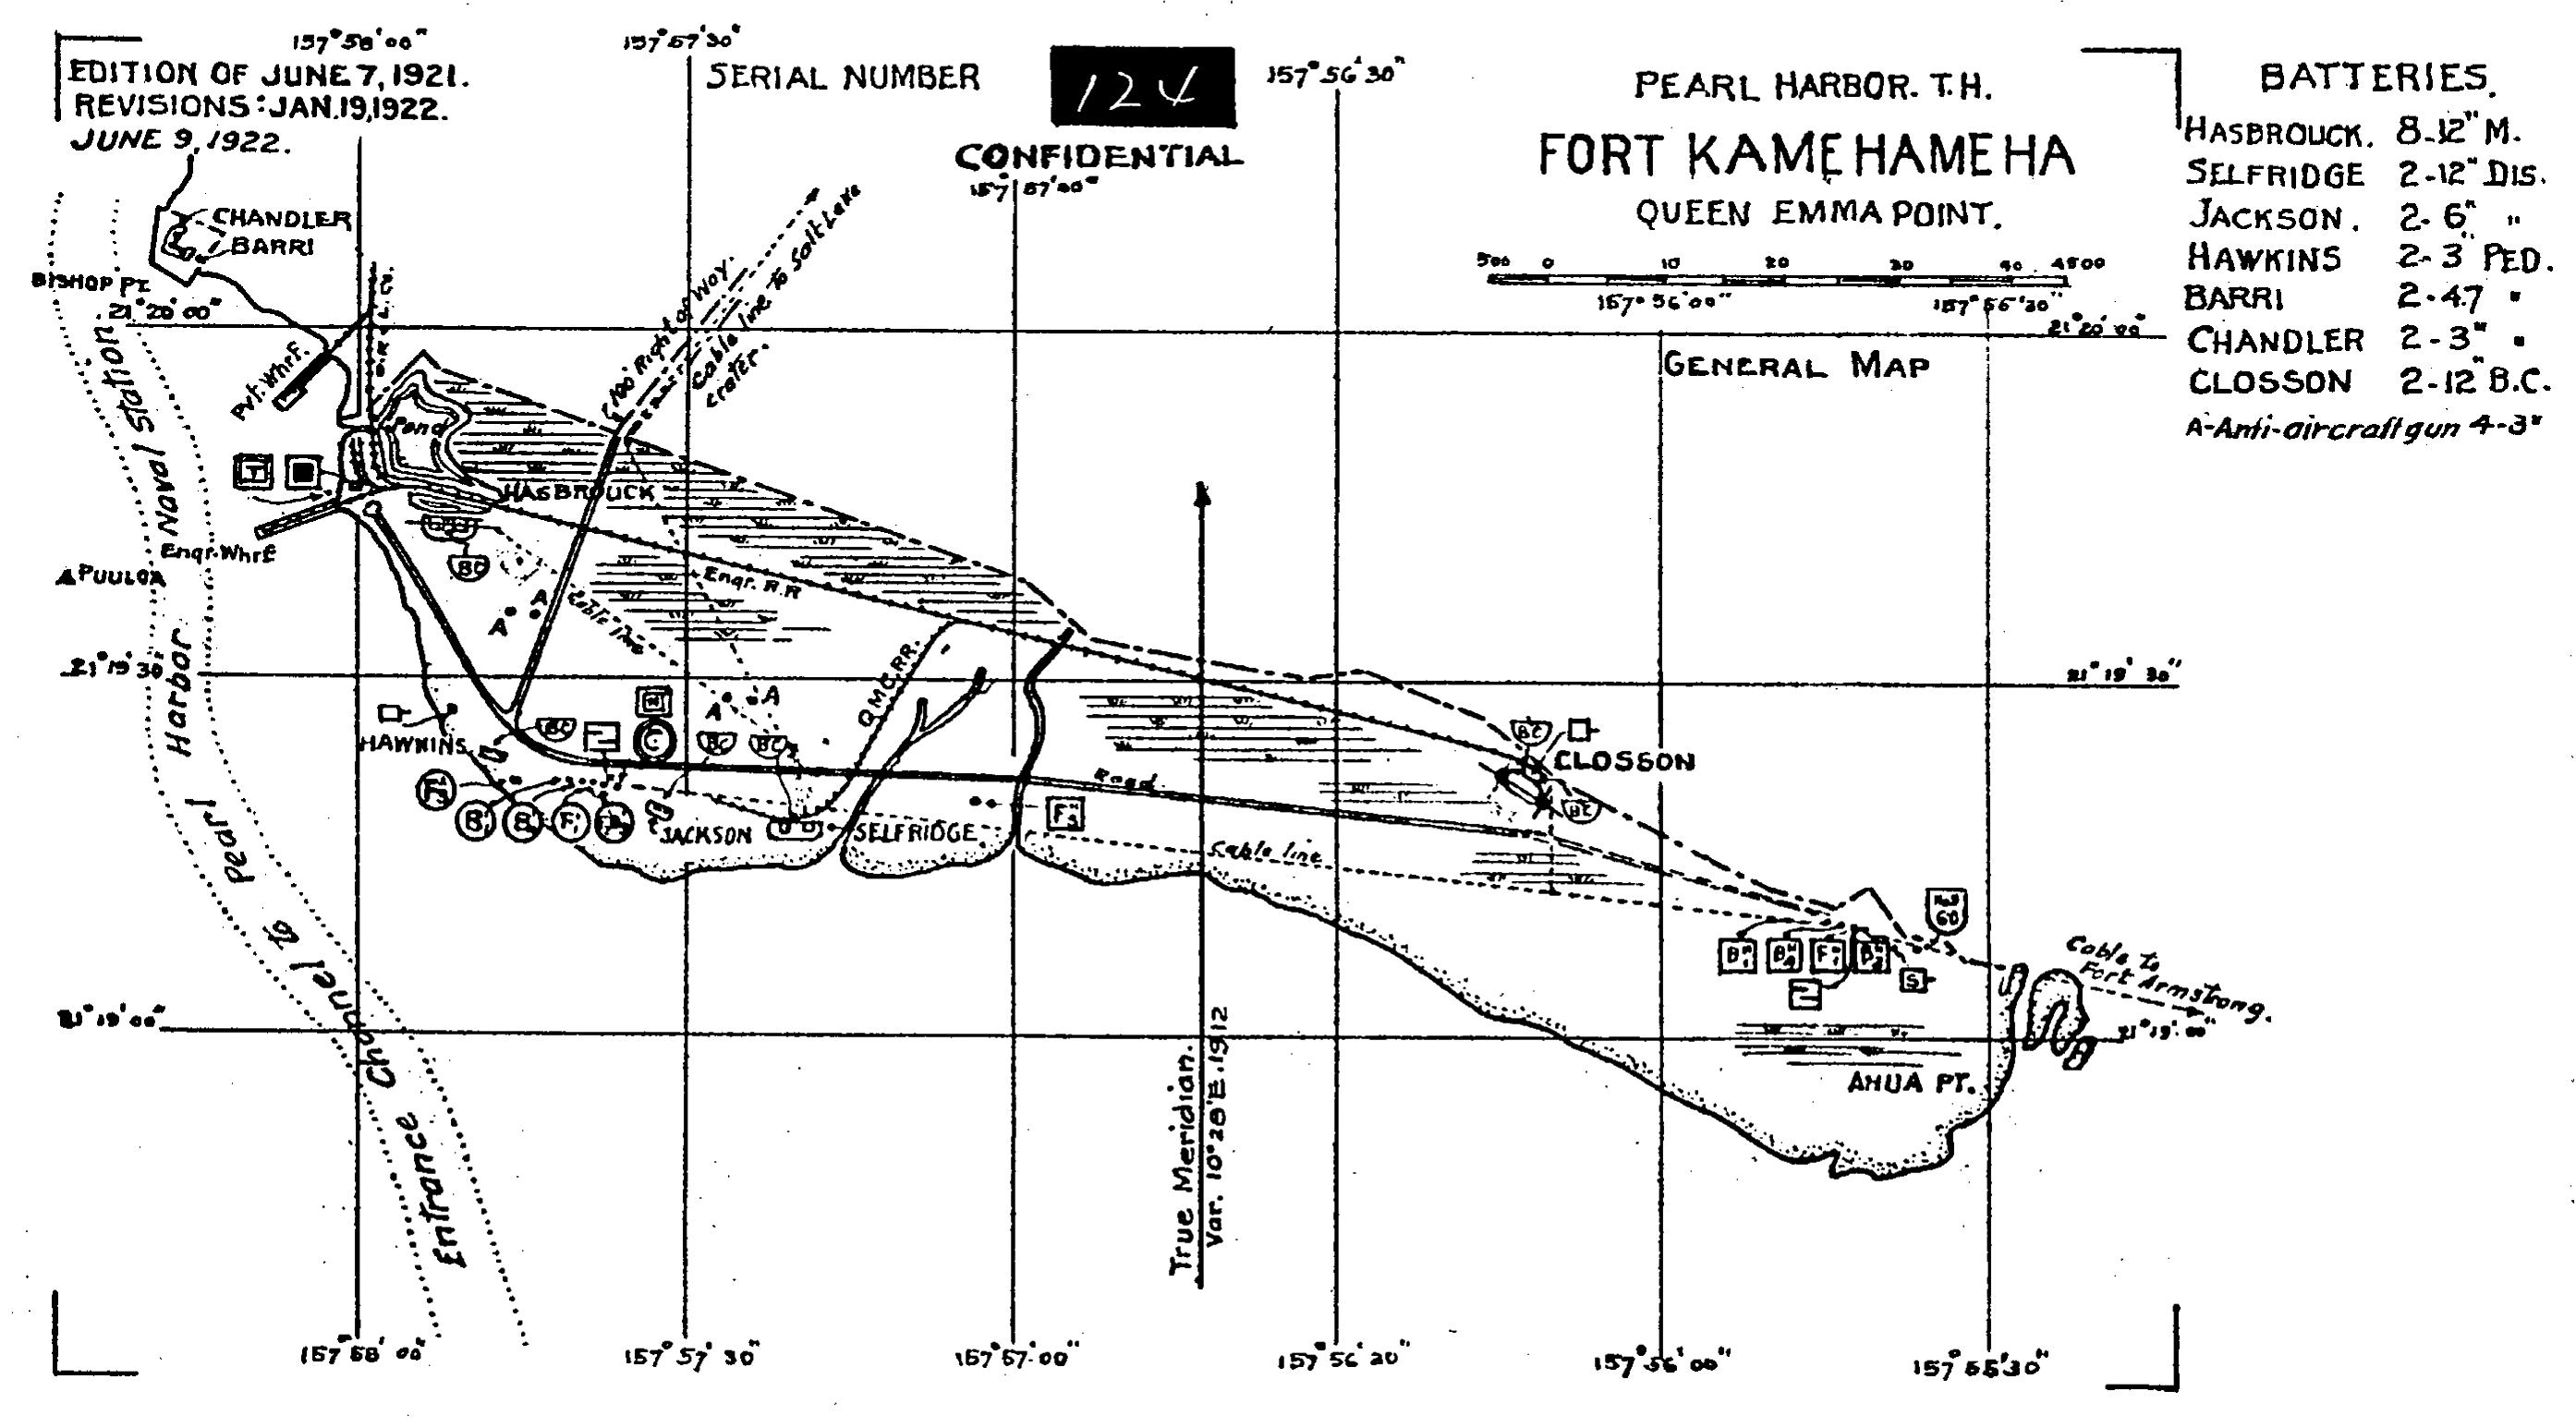 Map Diagram Of The Coastal Batteries Of Fort Kamehameha